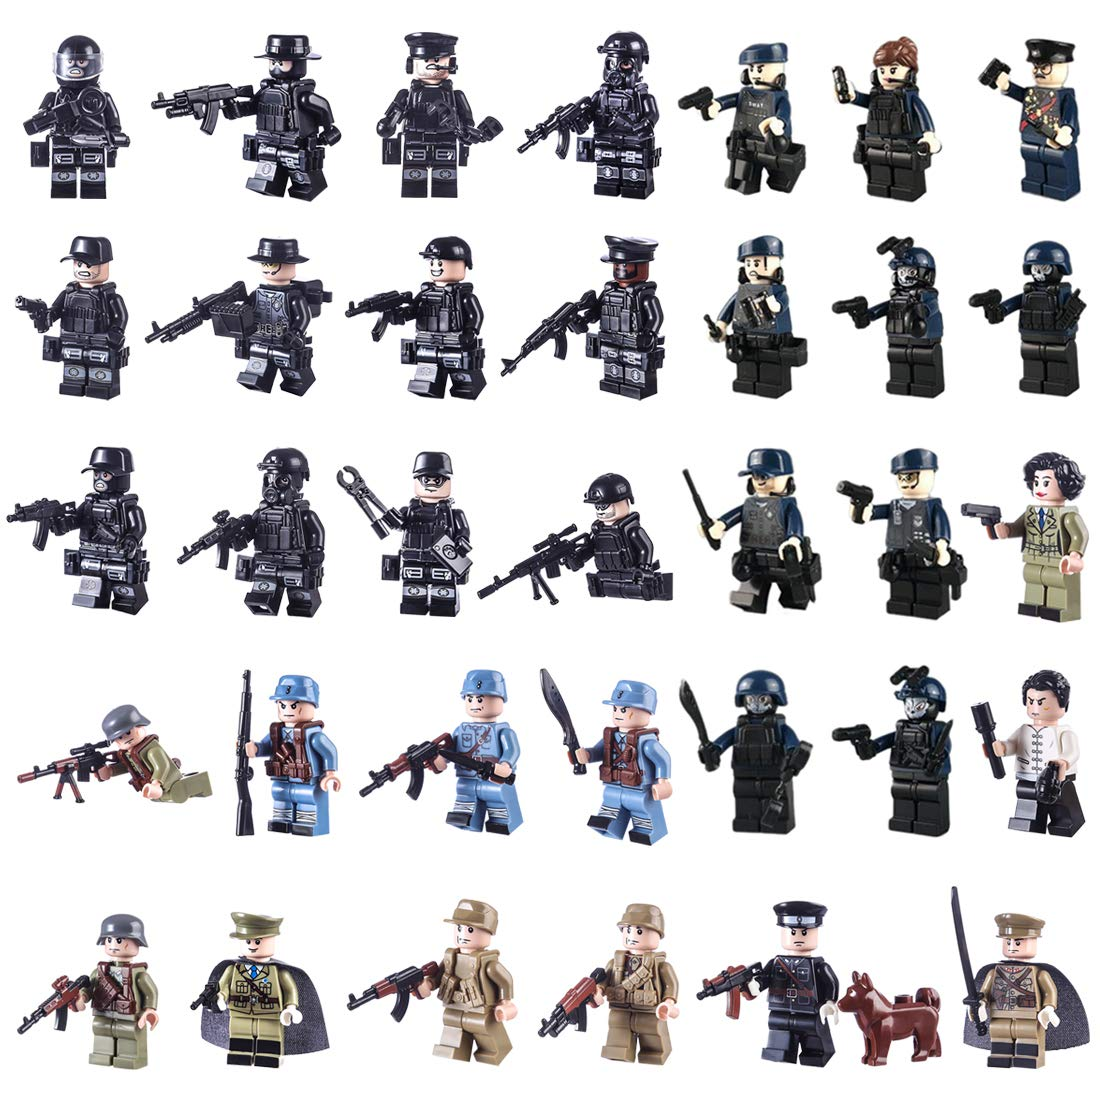 FutureShapers 34er Set Mini Soldaten Figuren SWAT Team Armee Bausteine Minifiguren Polizei Spielzeug Set Adventskalender Inhalt fü r Kinder